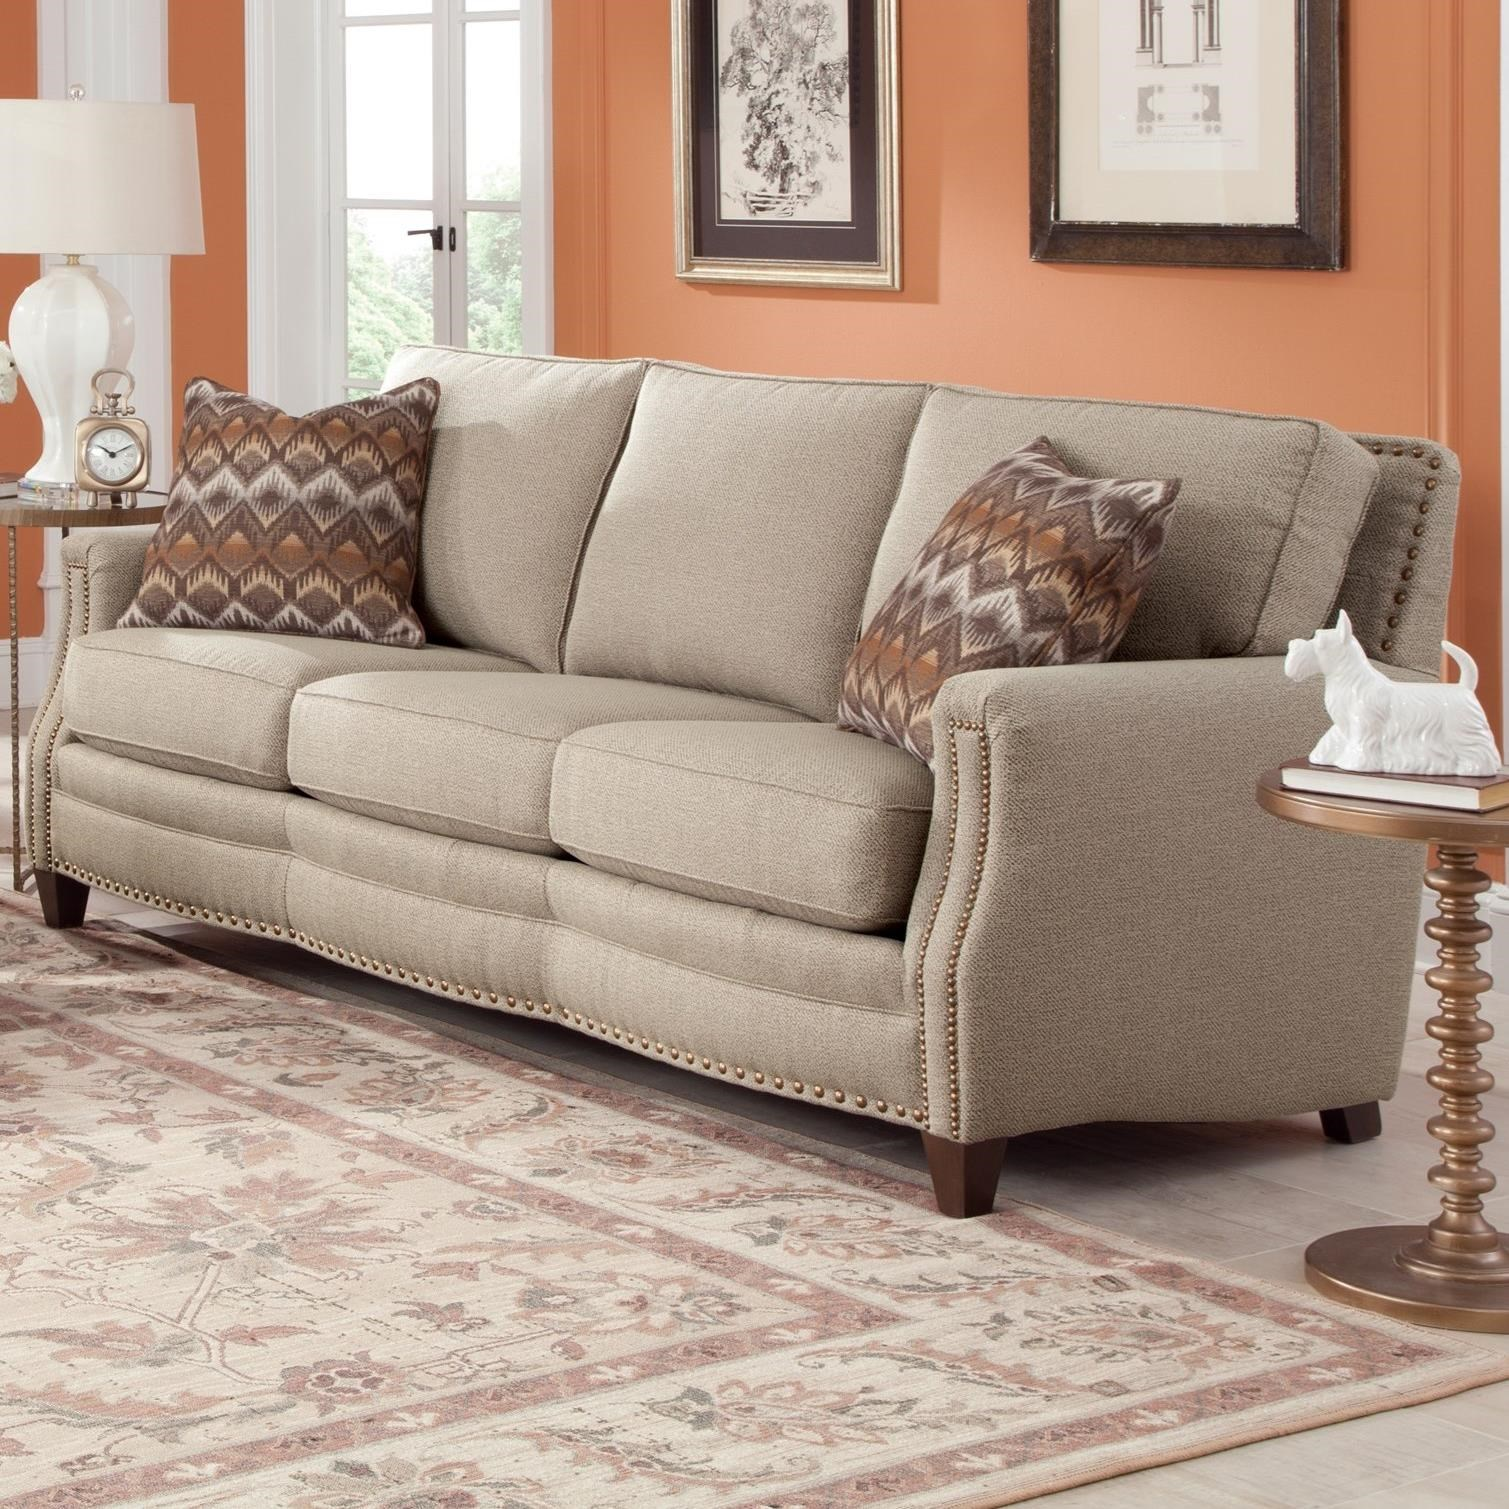 Smith Brothers 231 Sofa - Item Number: 231-10-372703